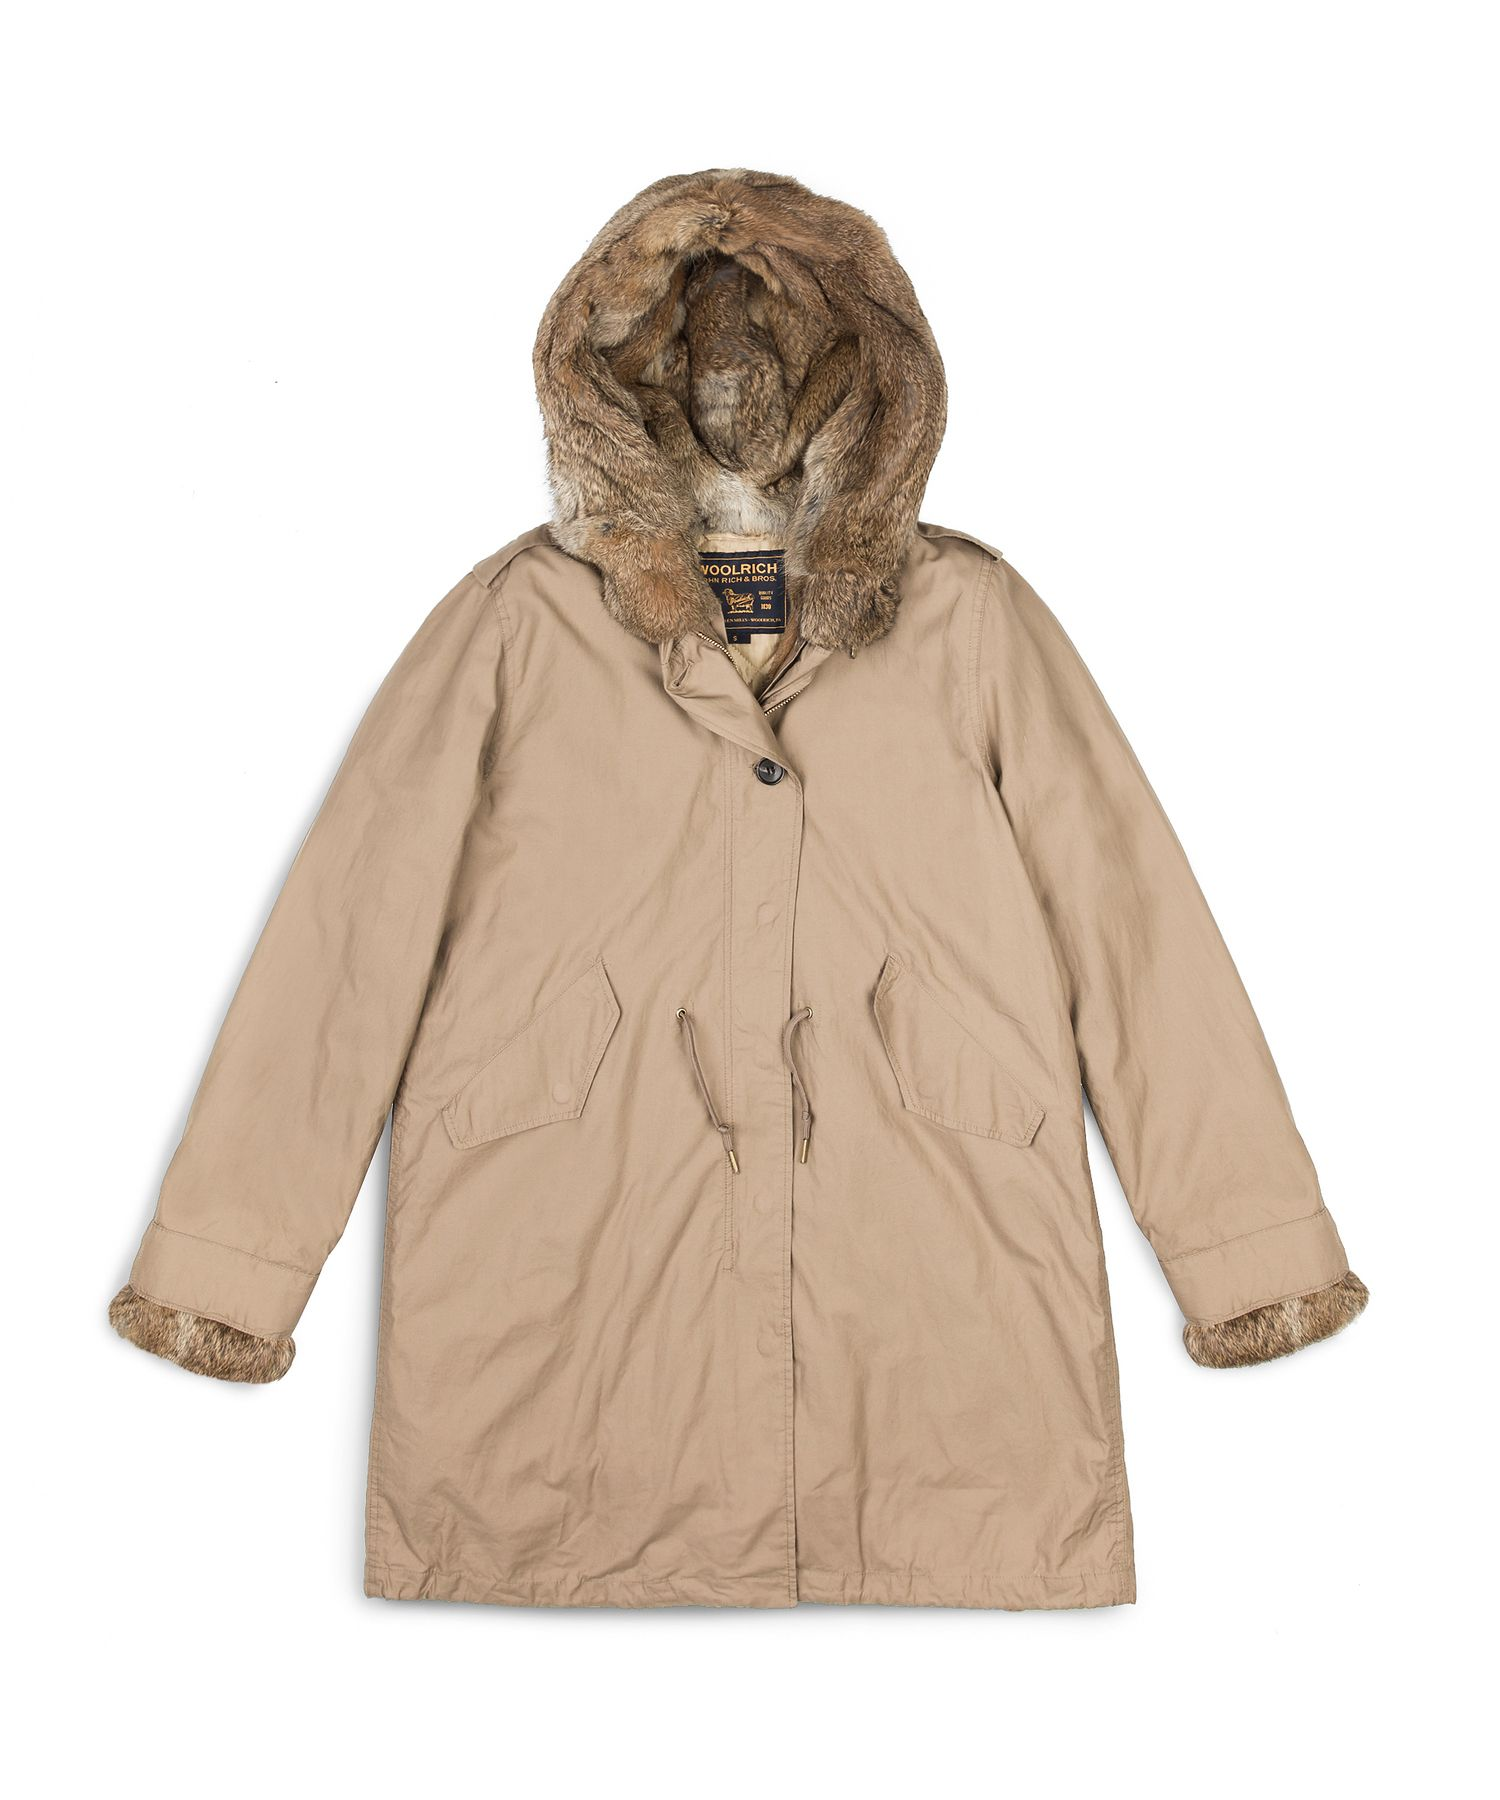 Women S Literary Walk Eskimo Parka By Woolrich The Original Outdoor Clothing Company